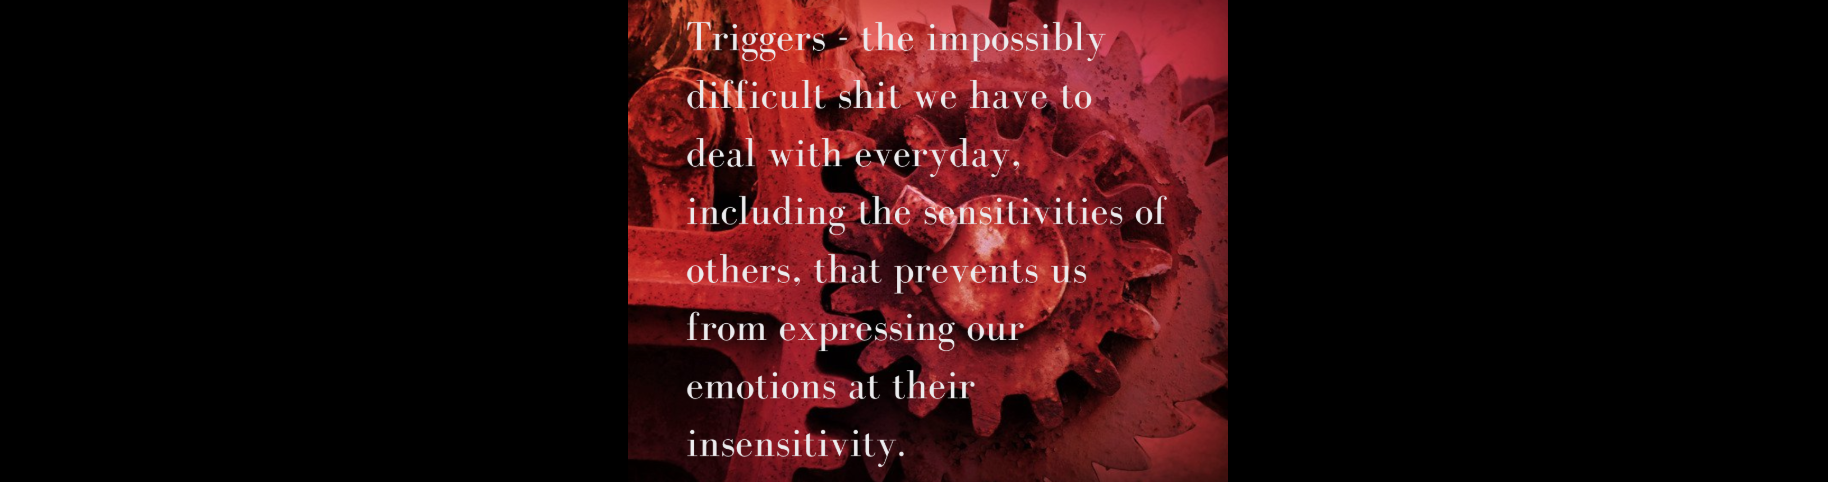 anger and triggers